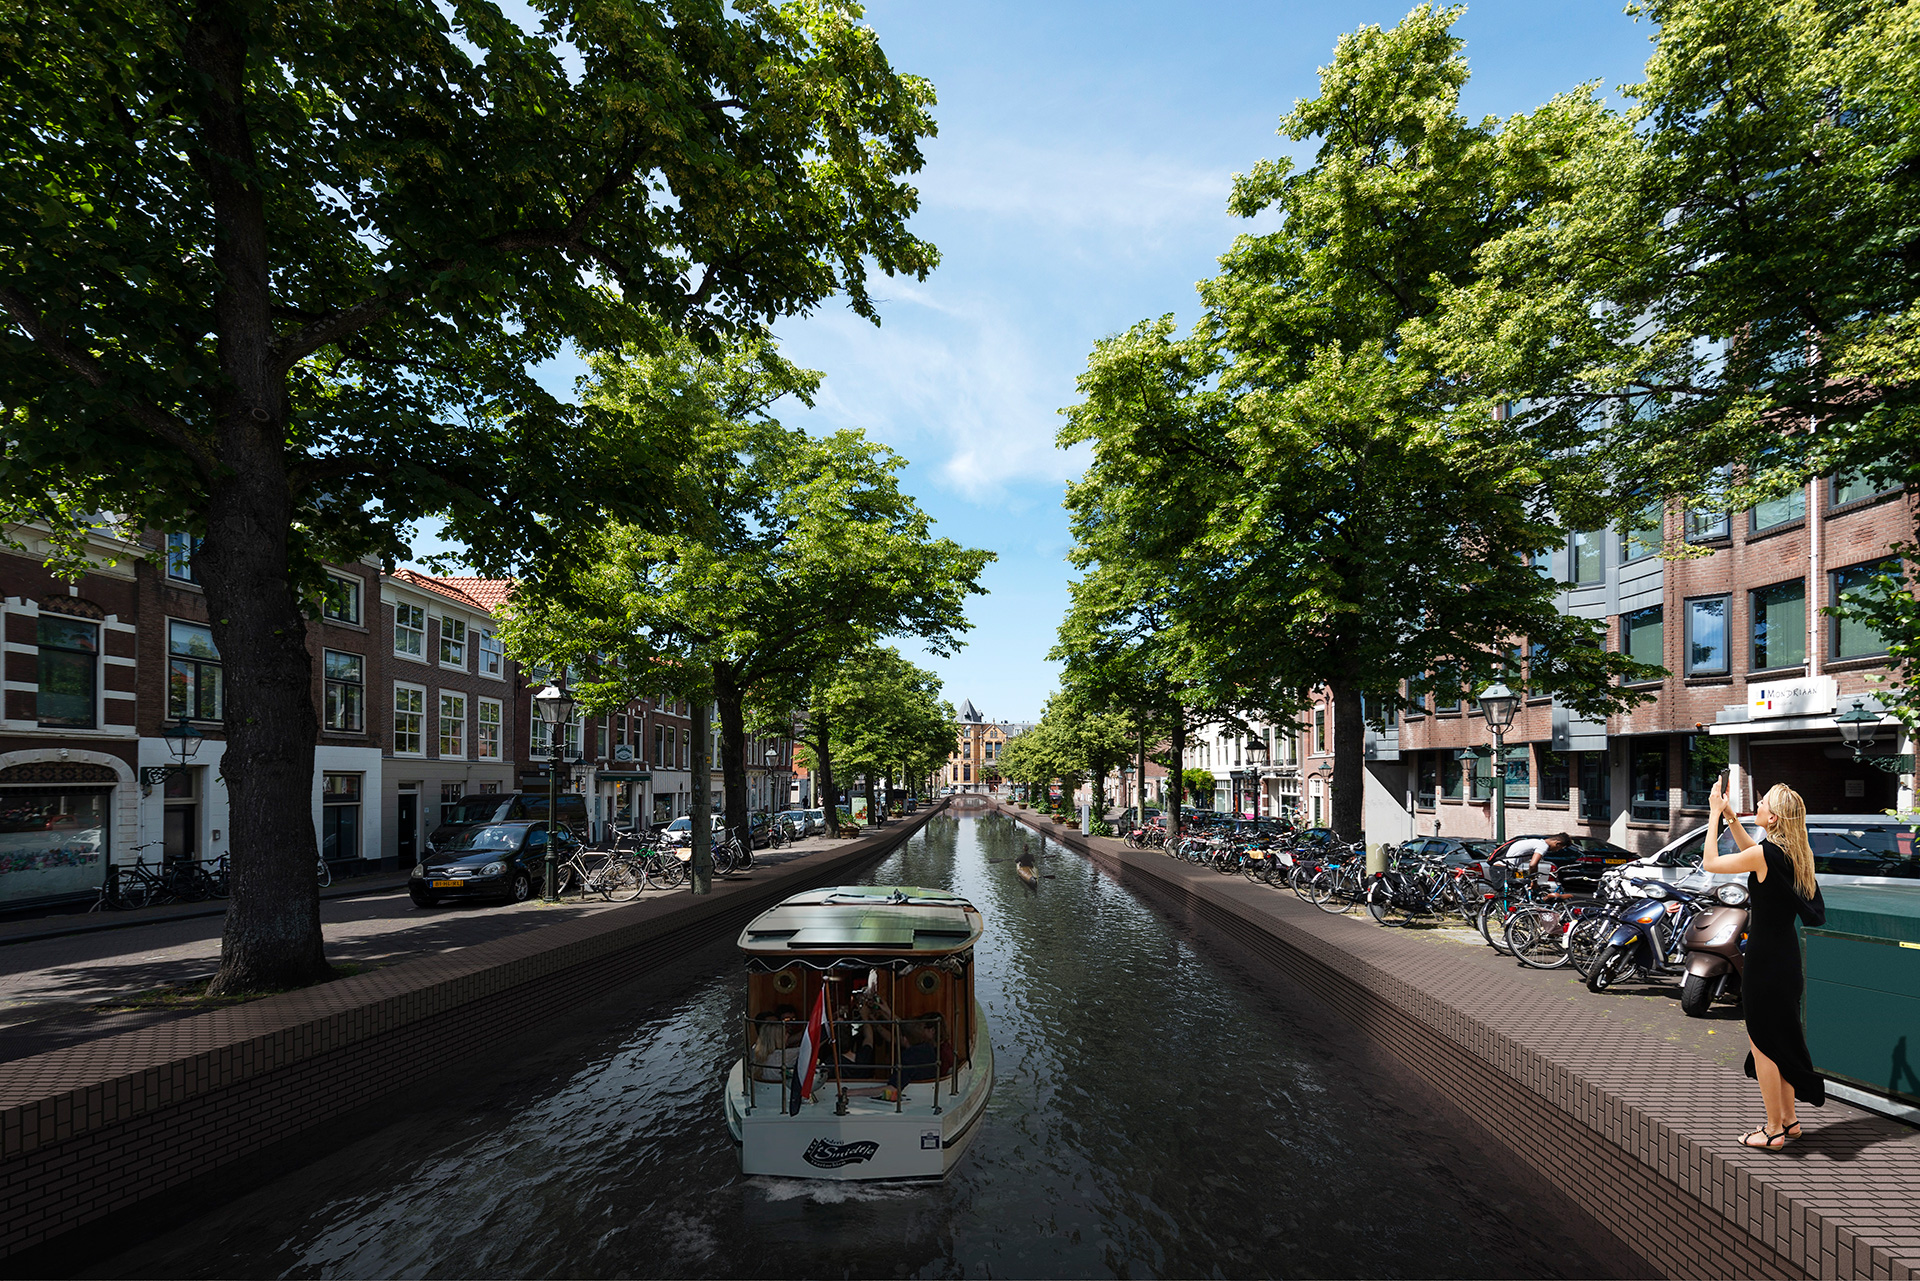 Brouwersgracht - Proposed | MVRDV| Hague Canals| STIR